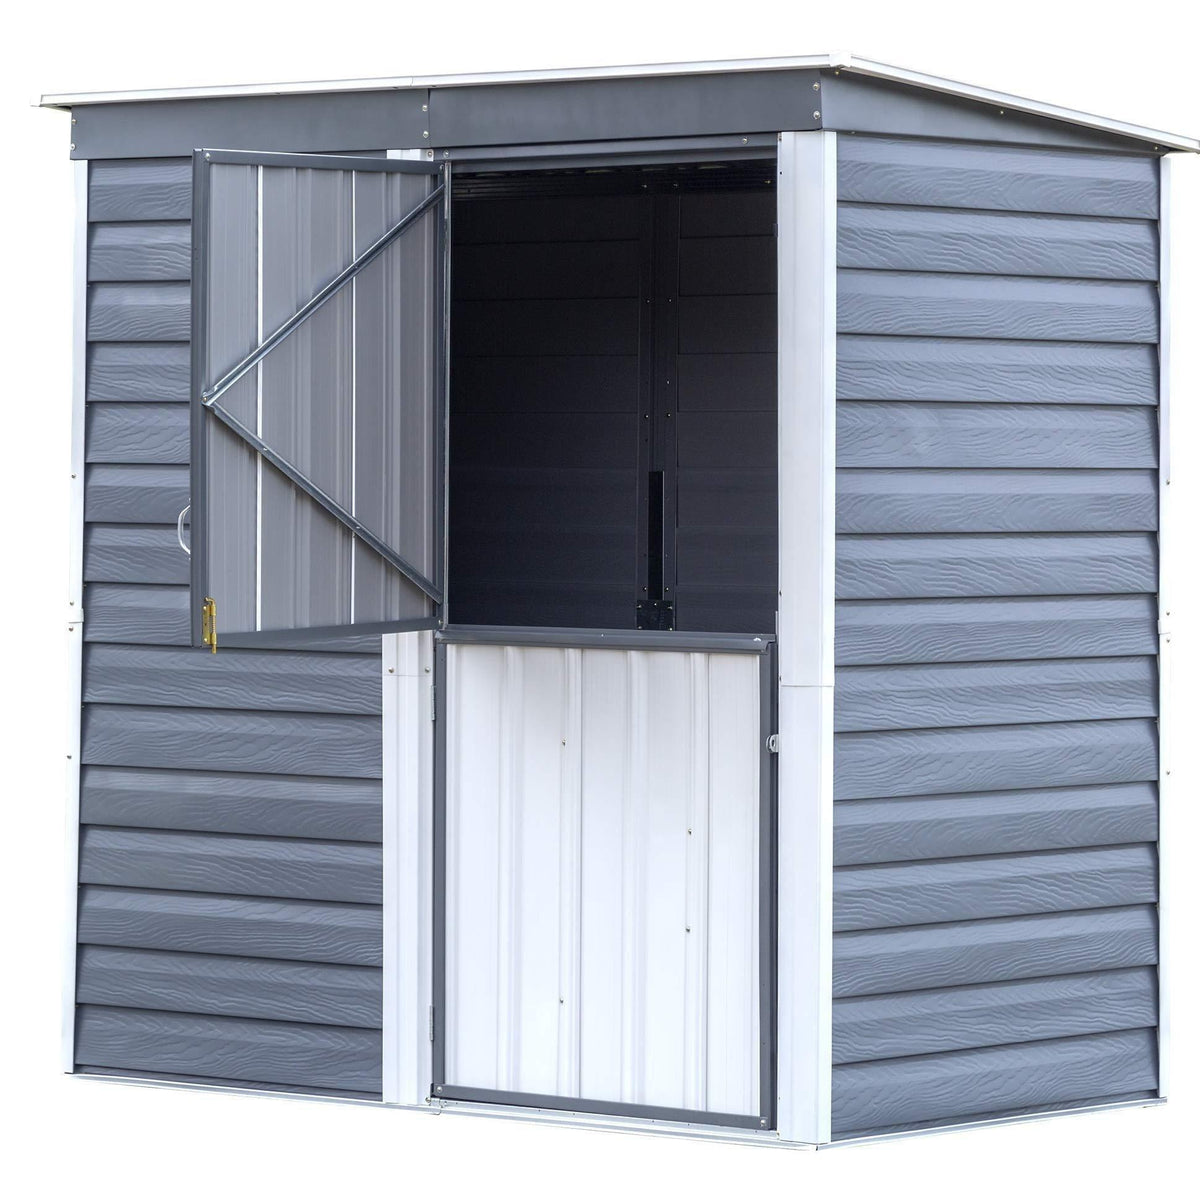 Arrow SBS64 Shed-in-a-Box Compact Galvanized Steel Storage Shed with Pent Roof, 6'x4', Charcoal